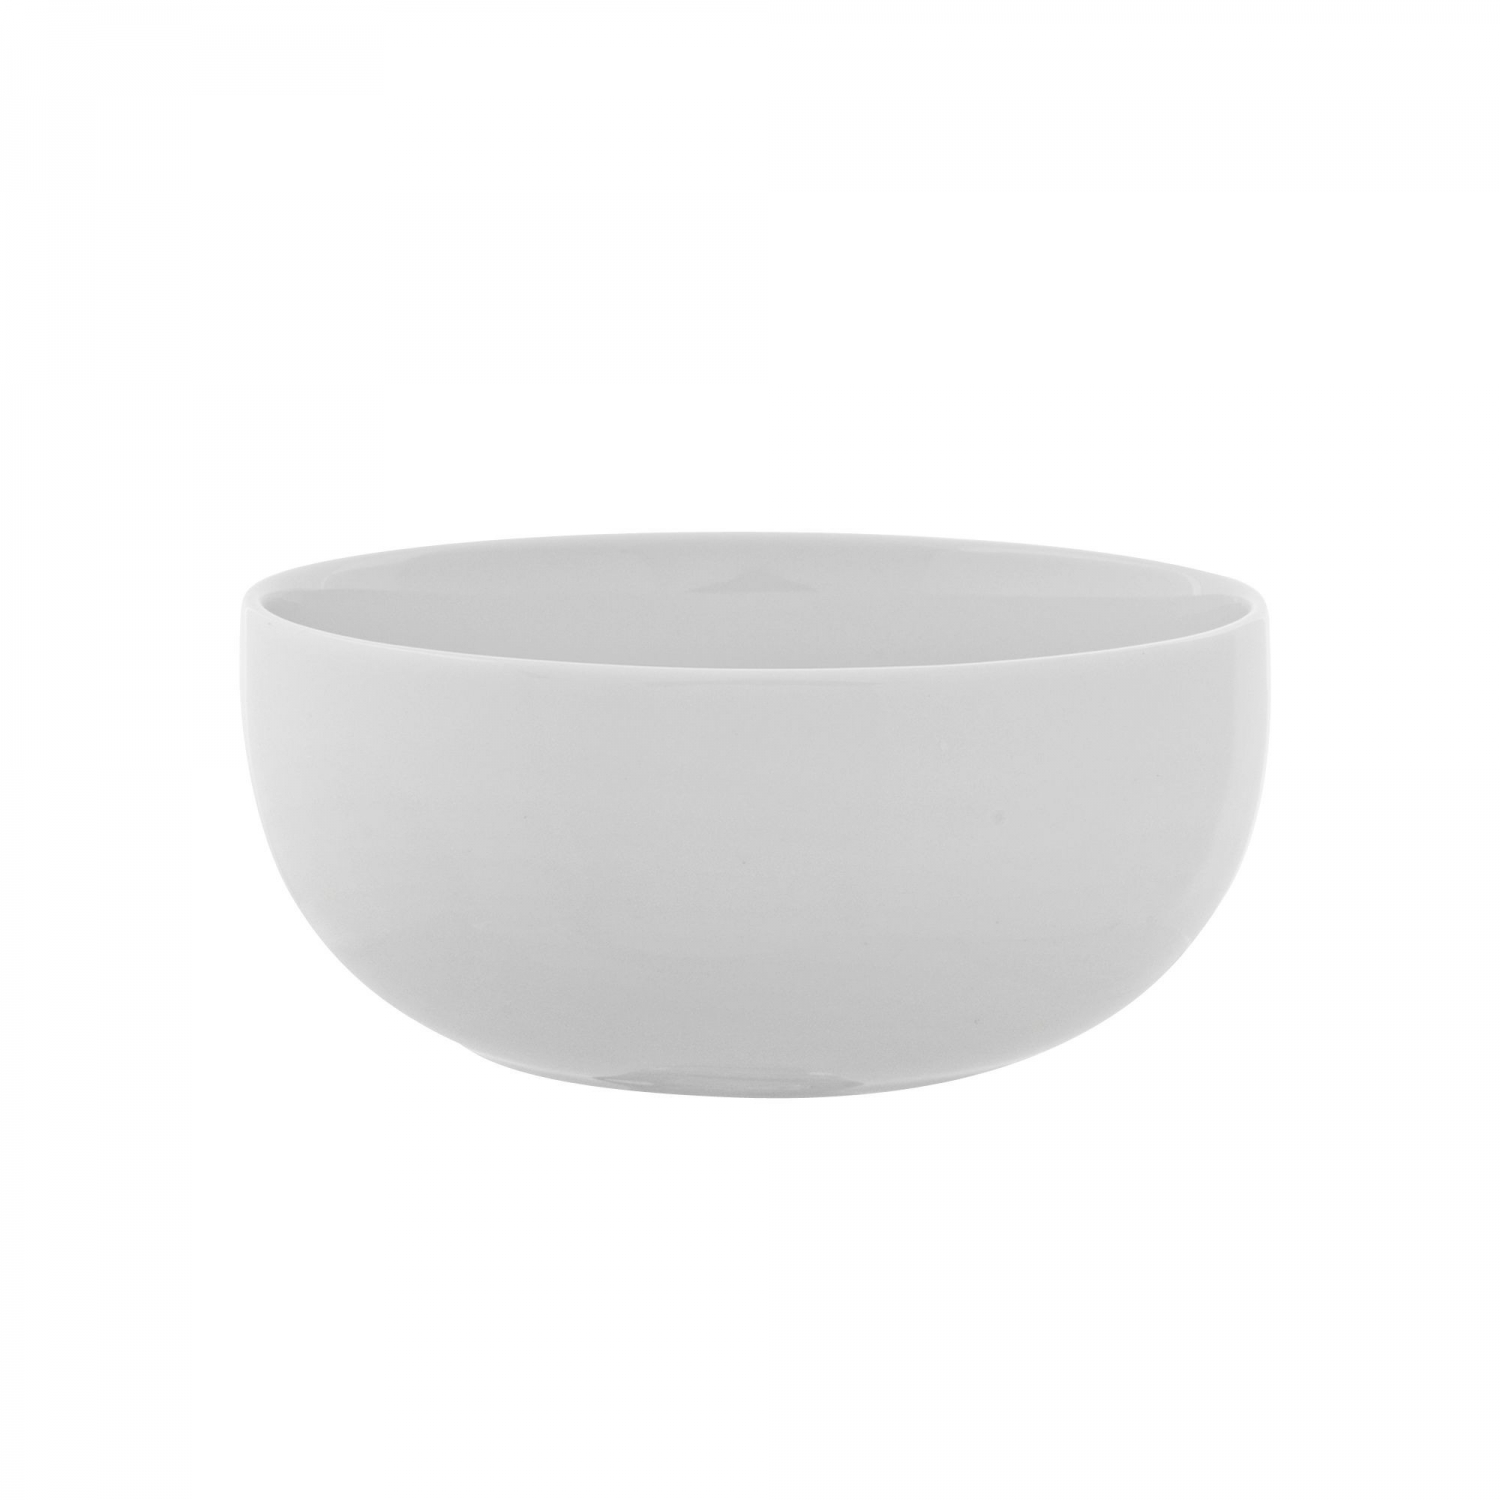 10 Strawberry Street RCP0007 Royal Coupe Cereal Bowl 24 oz.